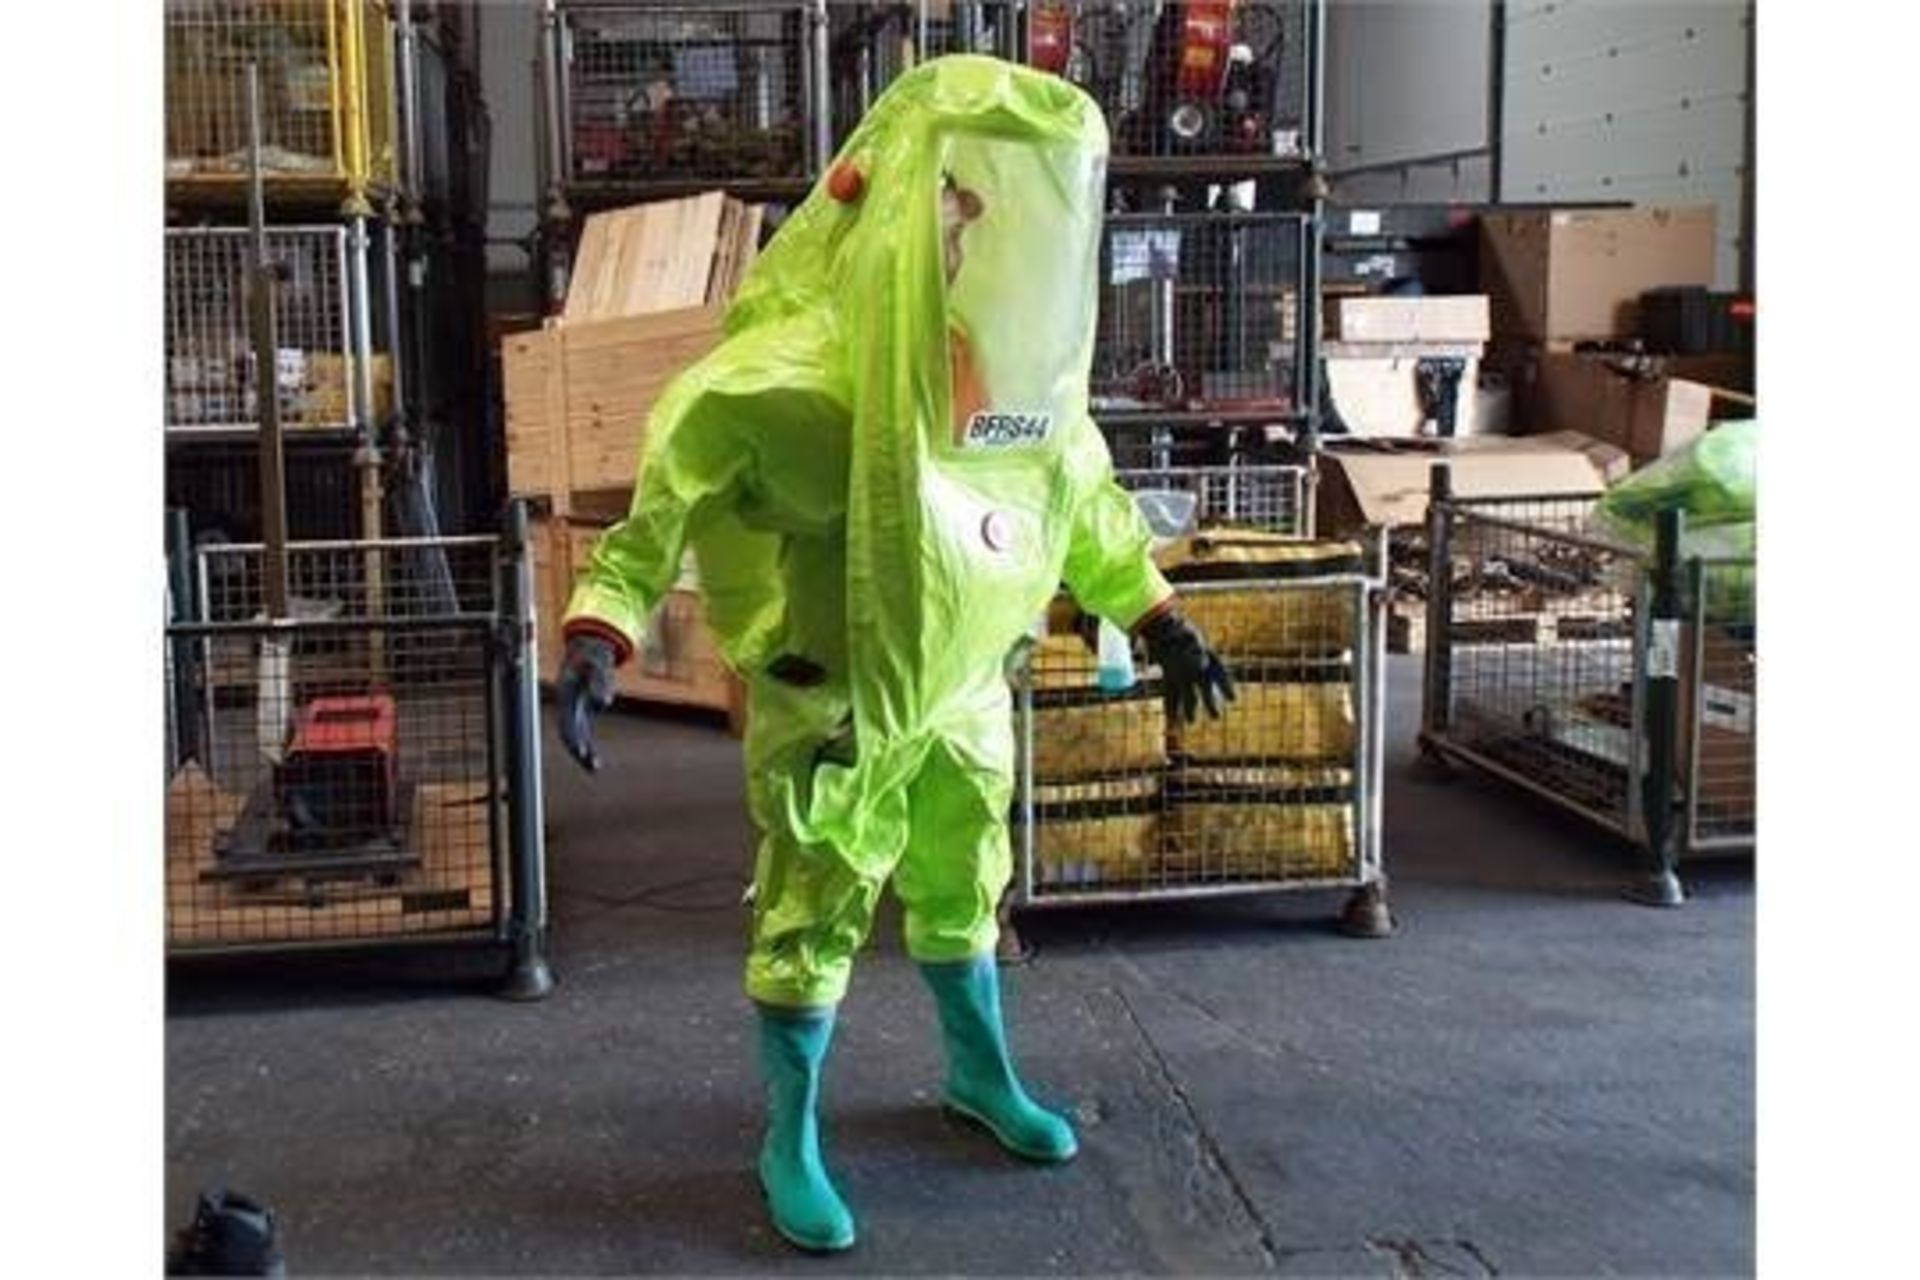 Lot 26808 - Q10 x Unissued Respirex Tychem TK Gas-Tight Hazmat Suit. Size Medium